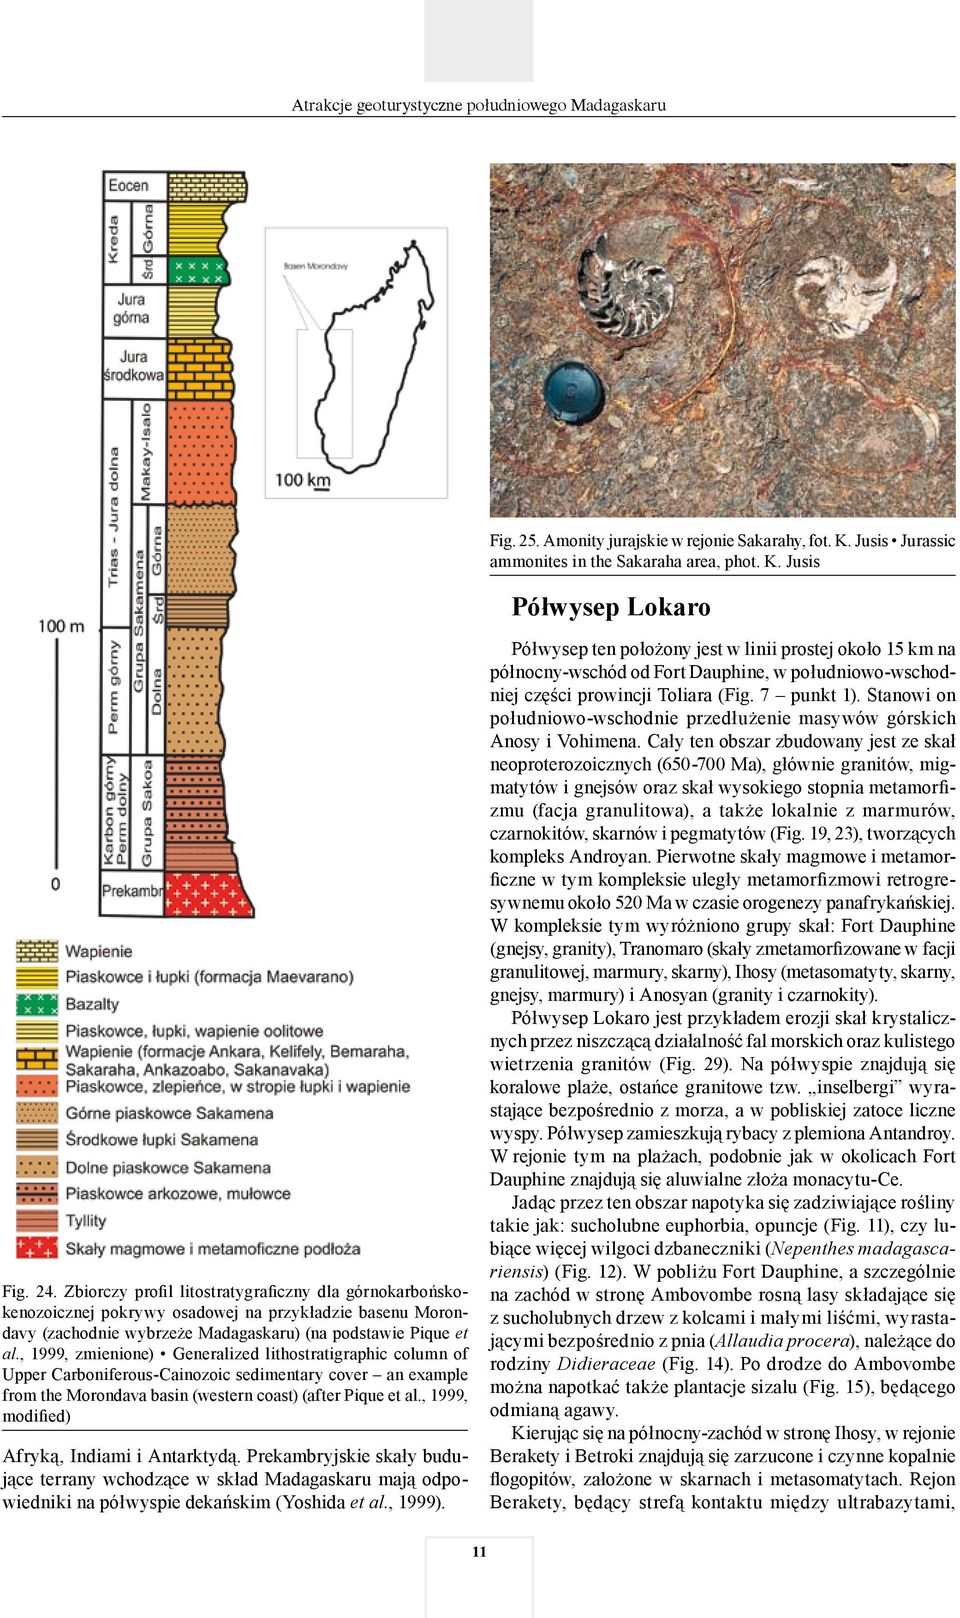 , 1999, zmienione) Generalized lithostratigraphic column of Upper Carboniferous-Cainozoic sedimentary cover an example from the Morondava basin (western coast) (after Pique et al.